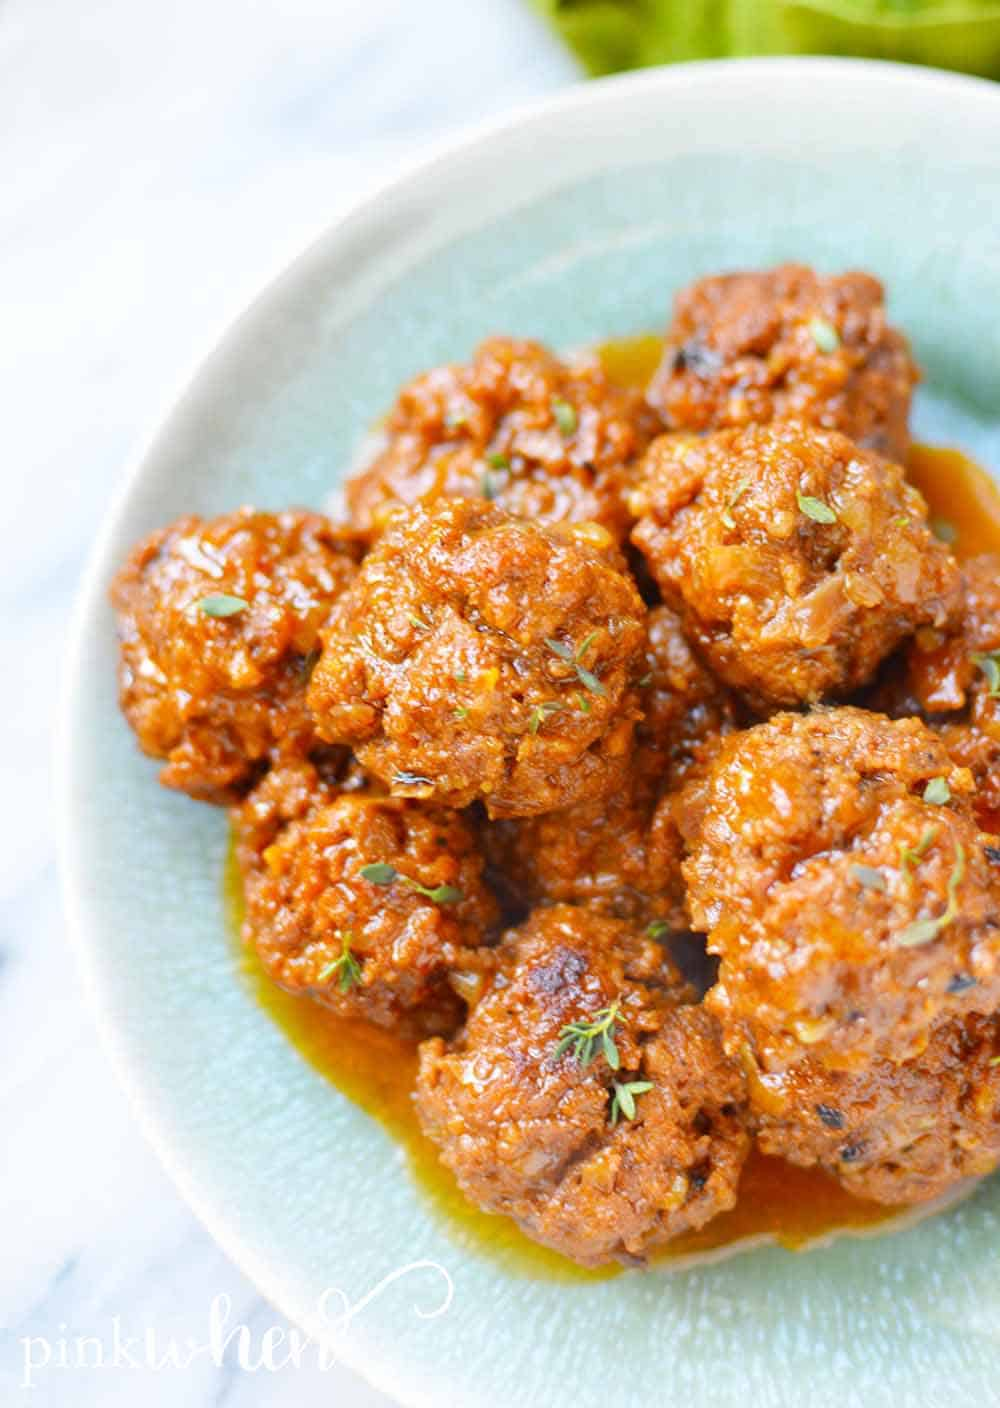 These instant pot bbq meatballs are a delicious staple you're going to want to try! These meatballs are moist, flavorful, and SO SO GOOD! You'll be adding these bbq meatballs to all kinds of dinner recipes!